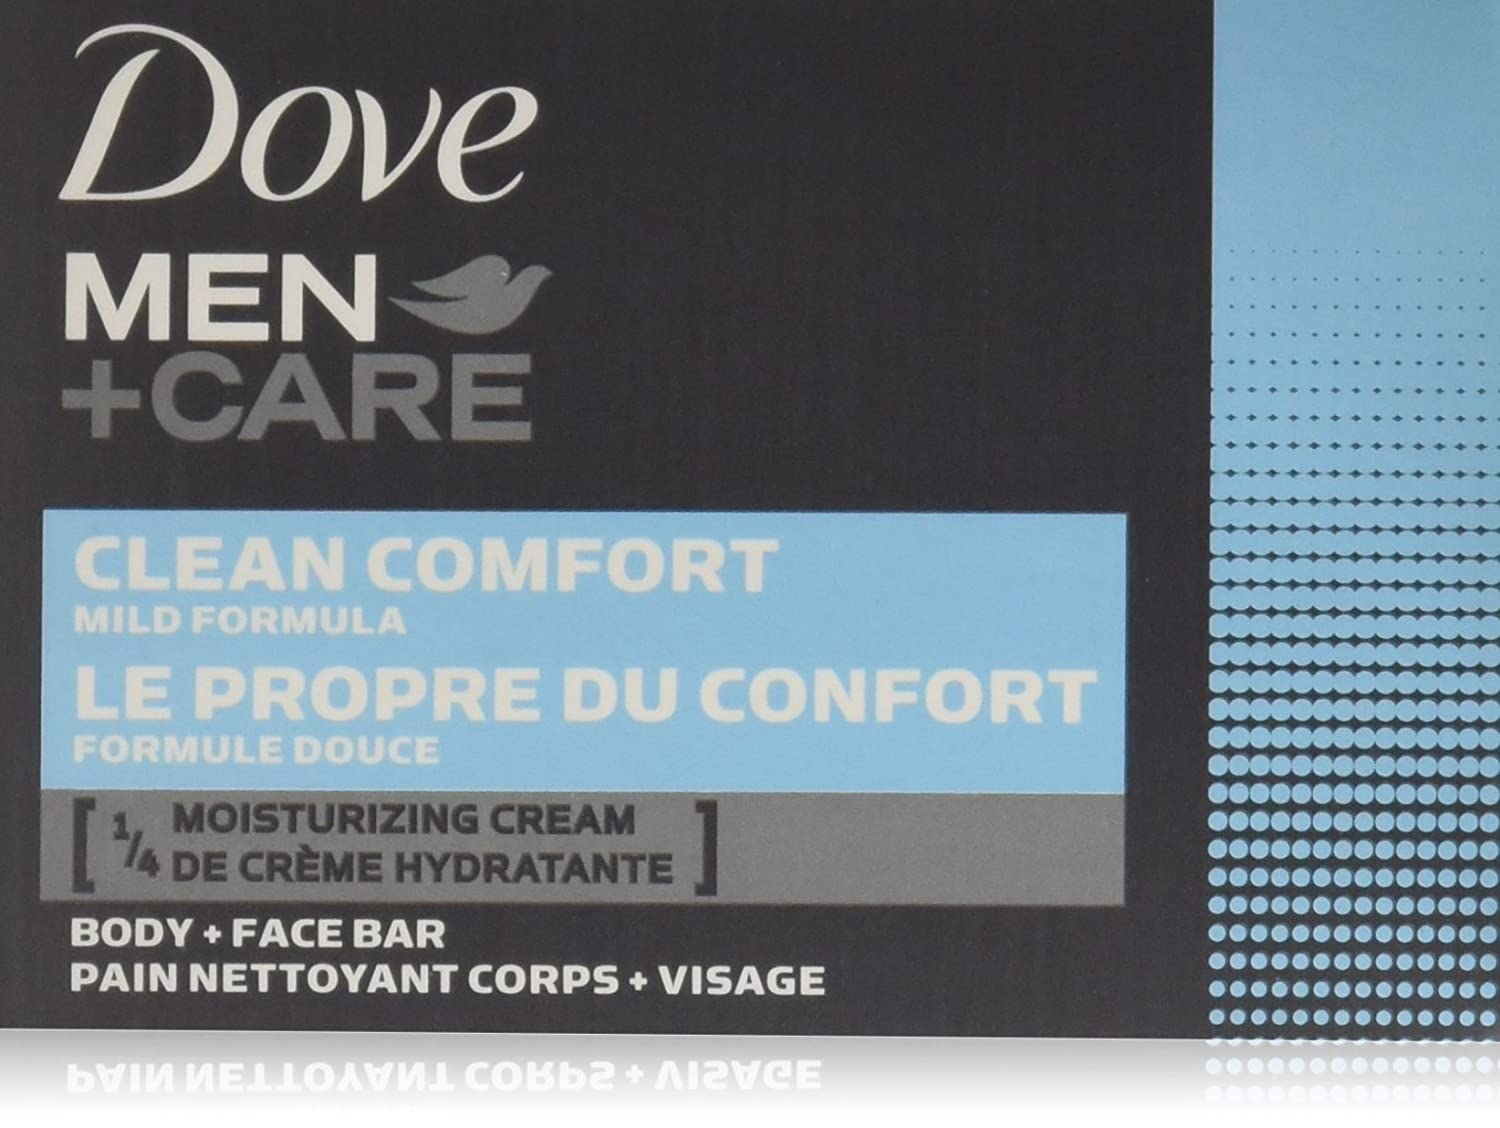 Dove Men+Care Body and Face Bar, Clean Comfort 4 oz, 24 BARS